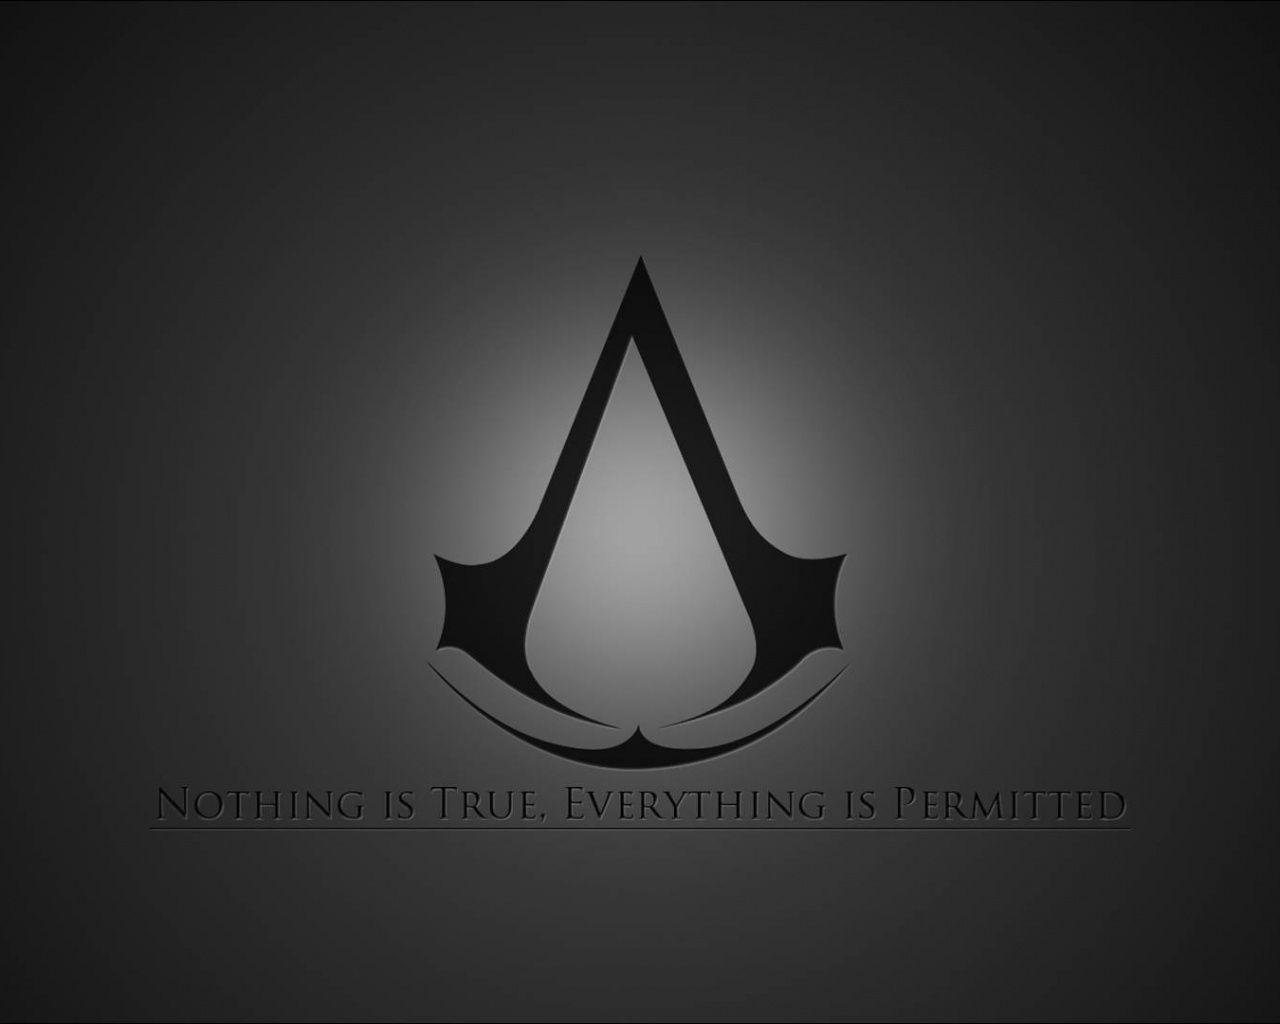 Download Assassin&Creed Logo Wallpapers in 1280x1024 Resolution